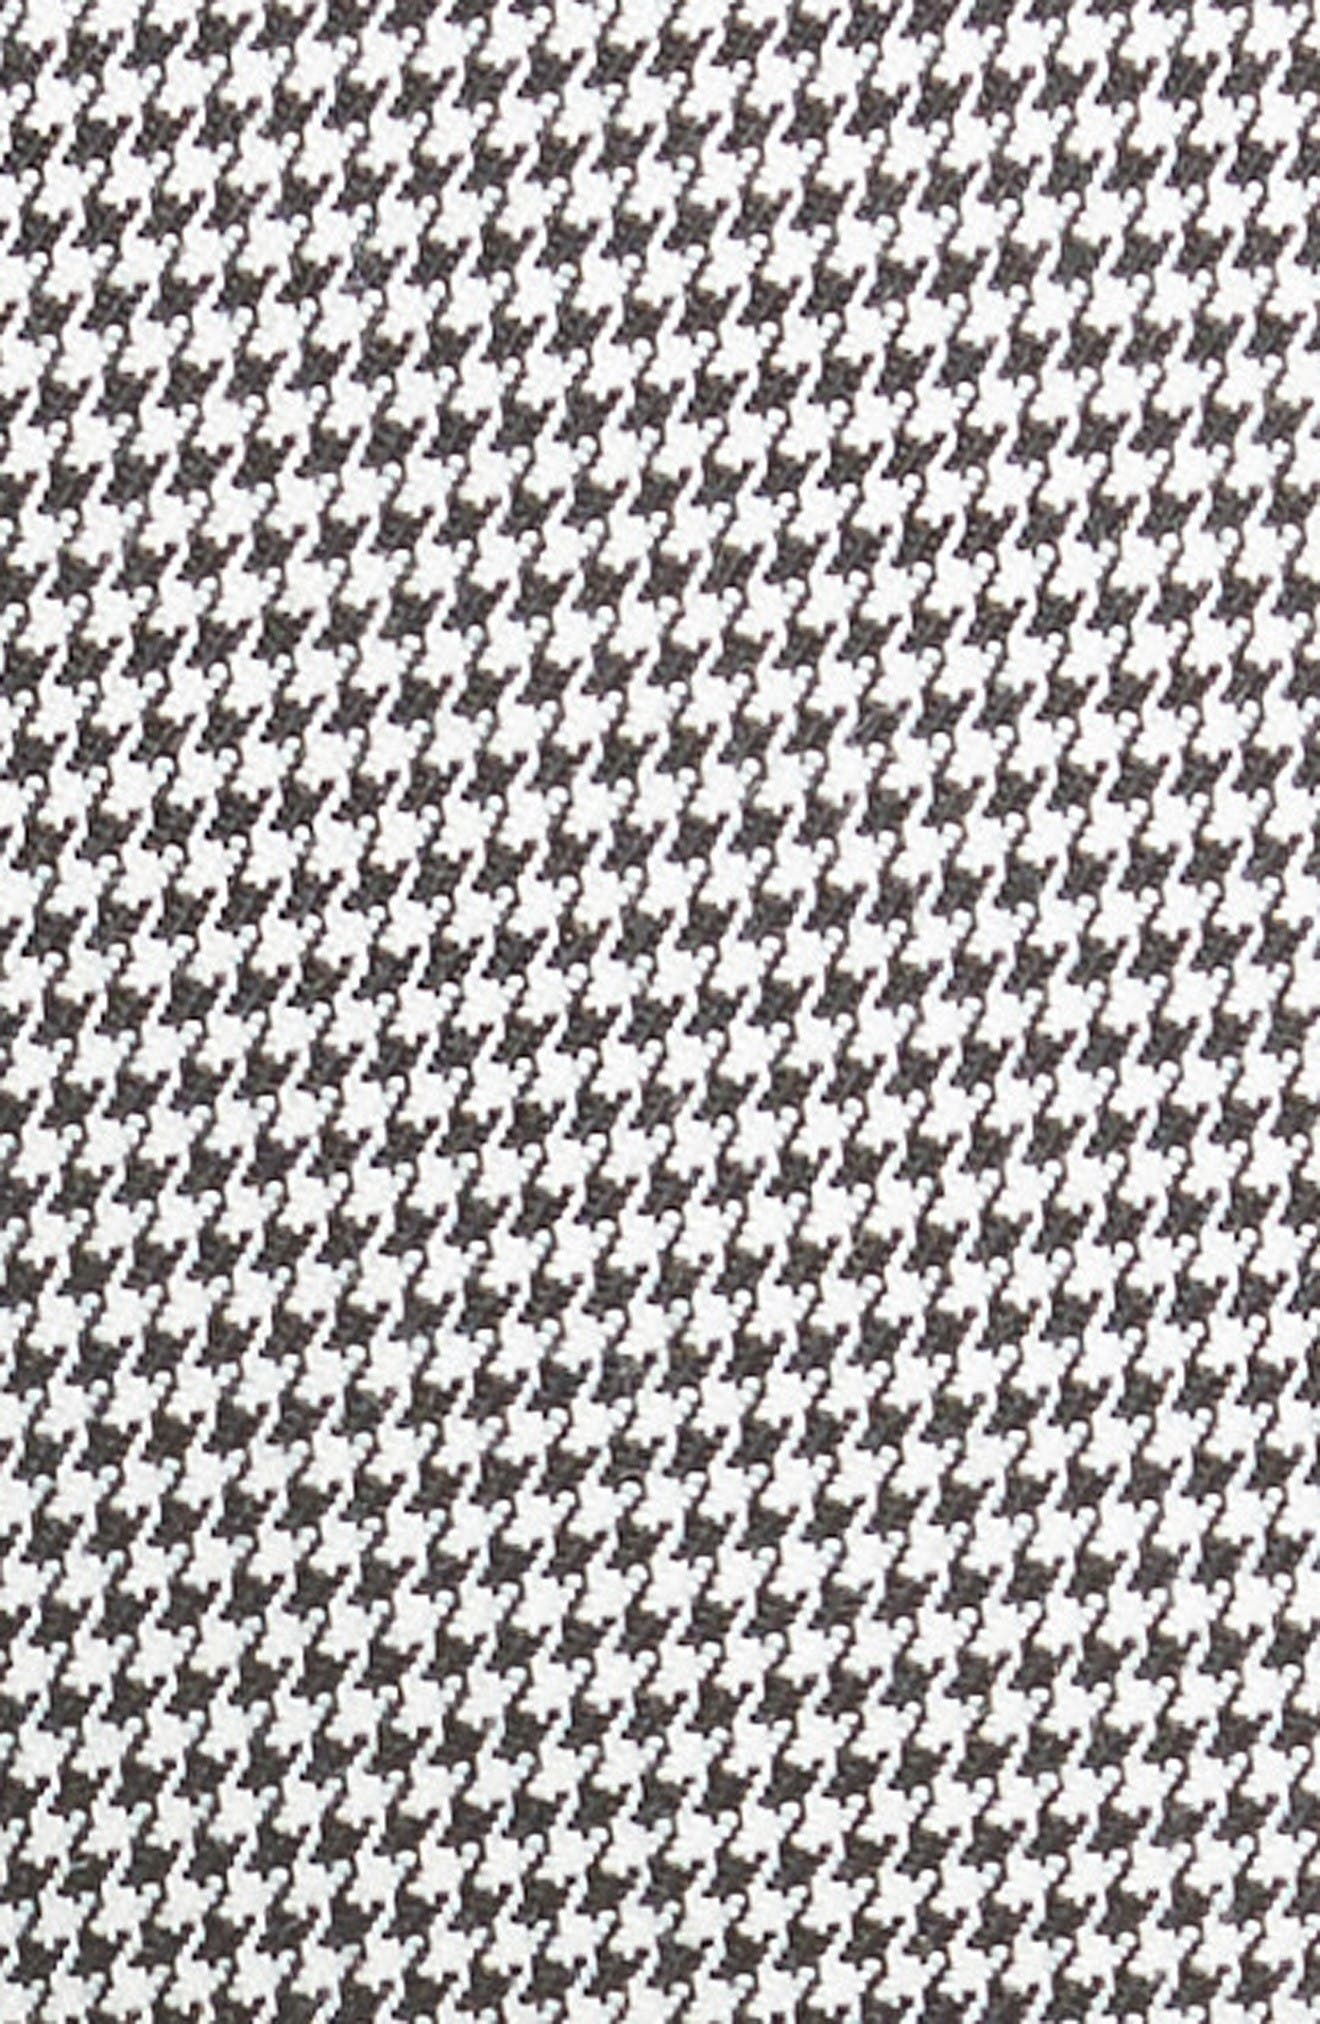 Samantha Houndstooth Pants,                             Alternate thumbnail 3, color,                             Black/ White